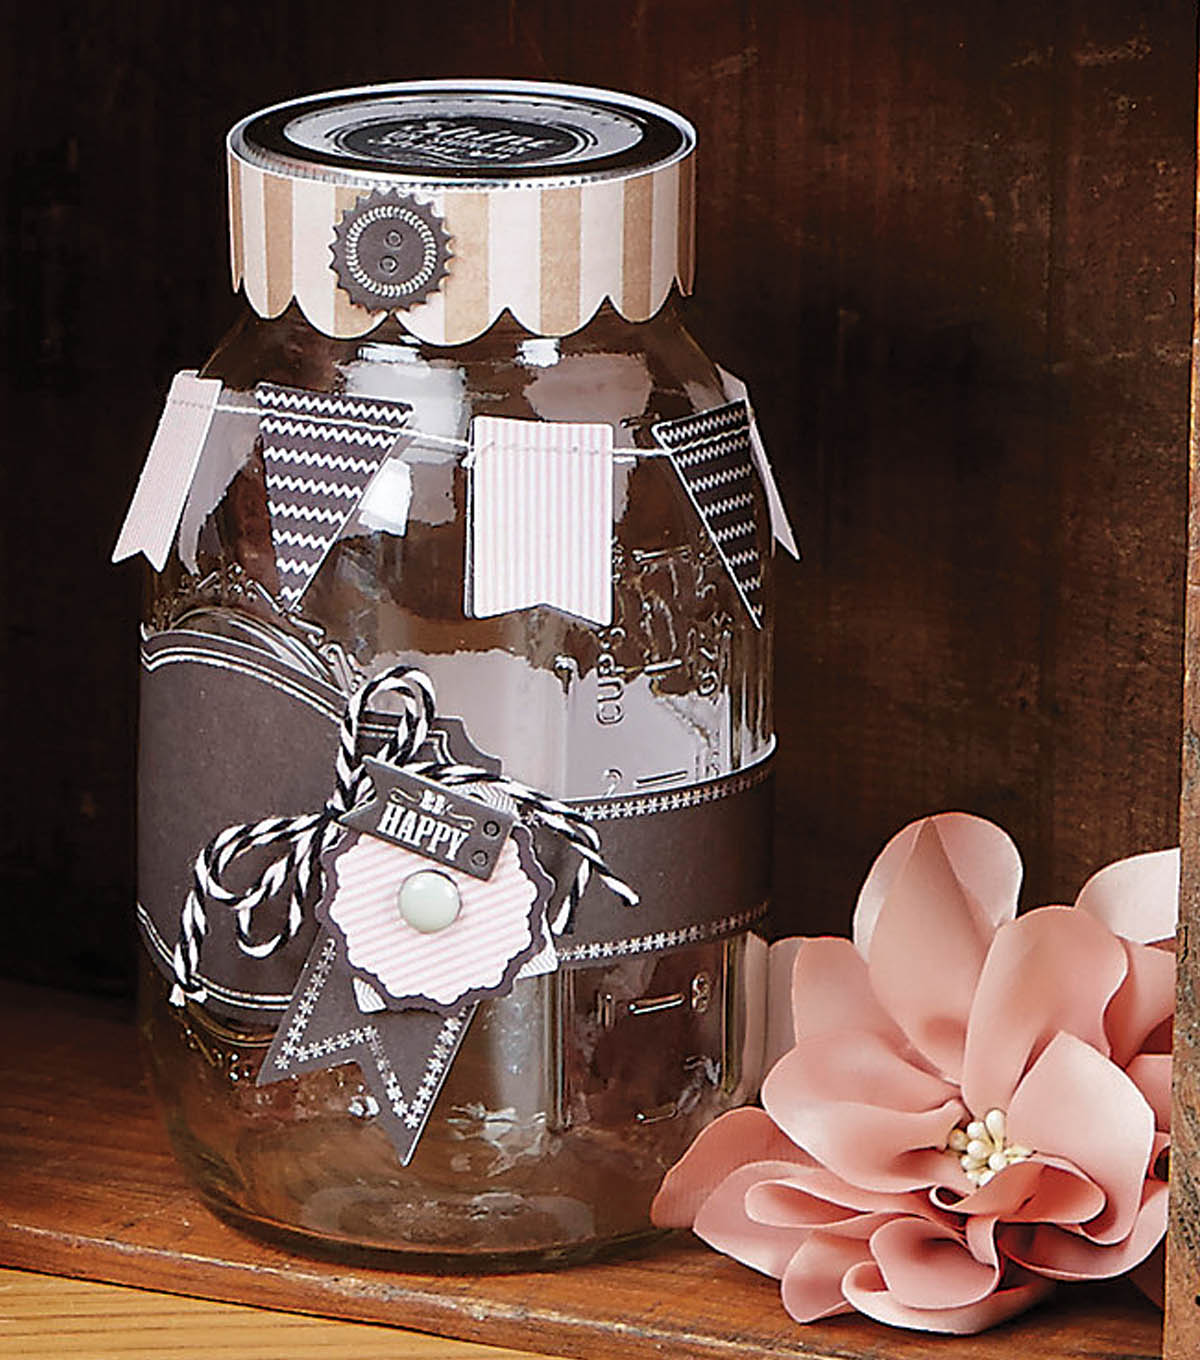 Ball Jar with Chalkboard Label